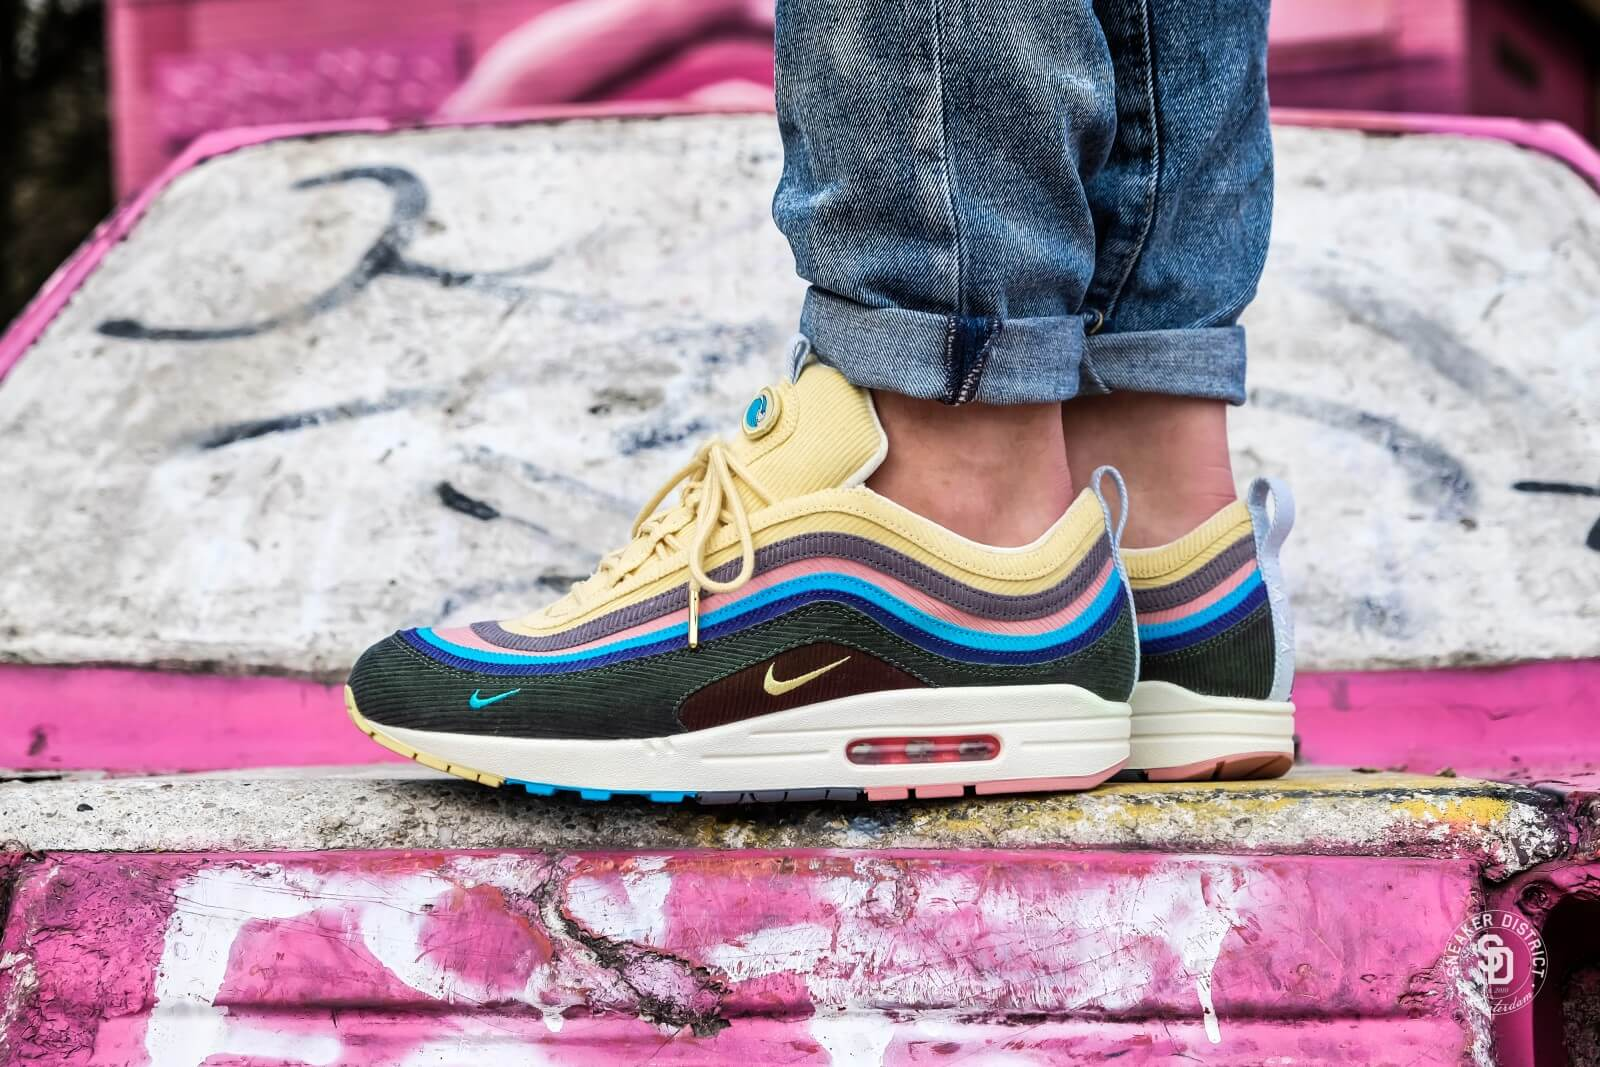 Nike Airmax Wotherspoon